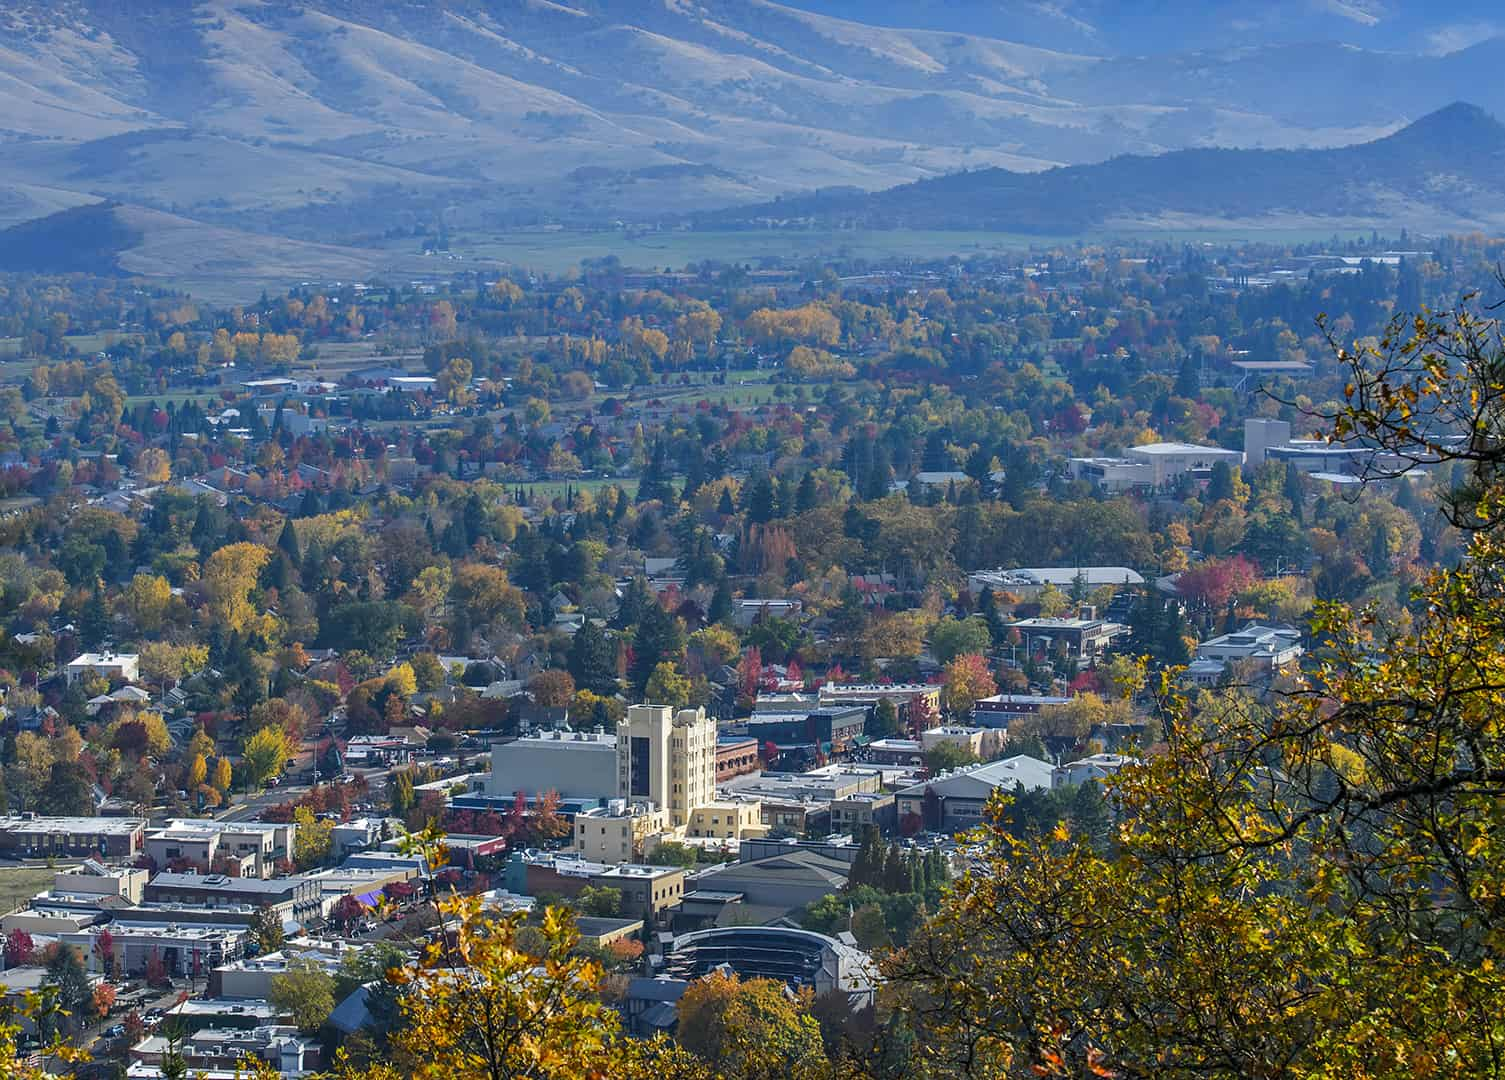 Landscape view of Ashland, Oregon and the surrounding forest